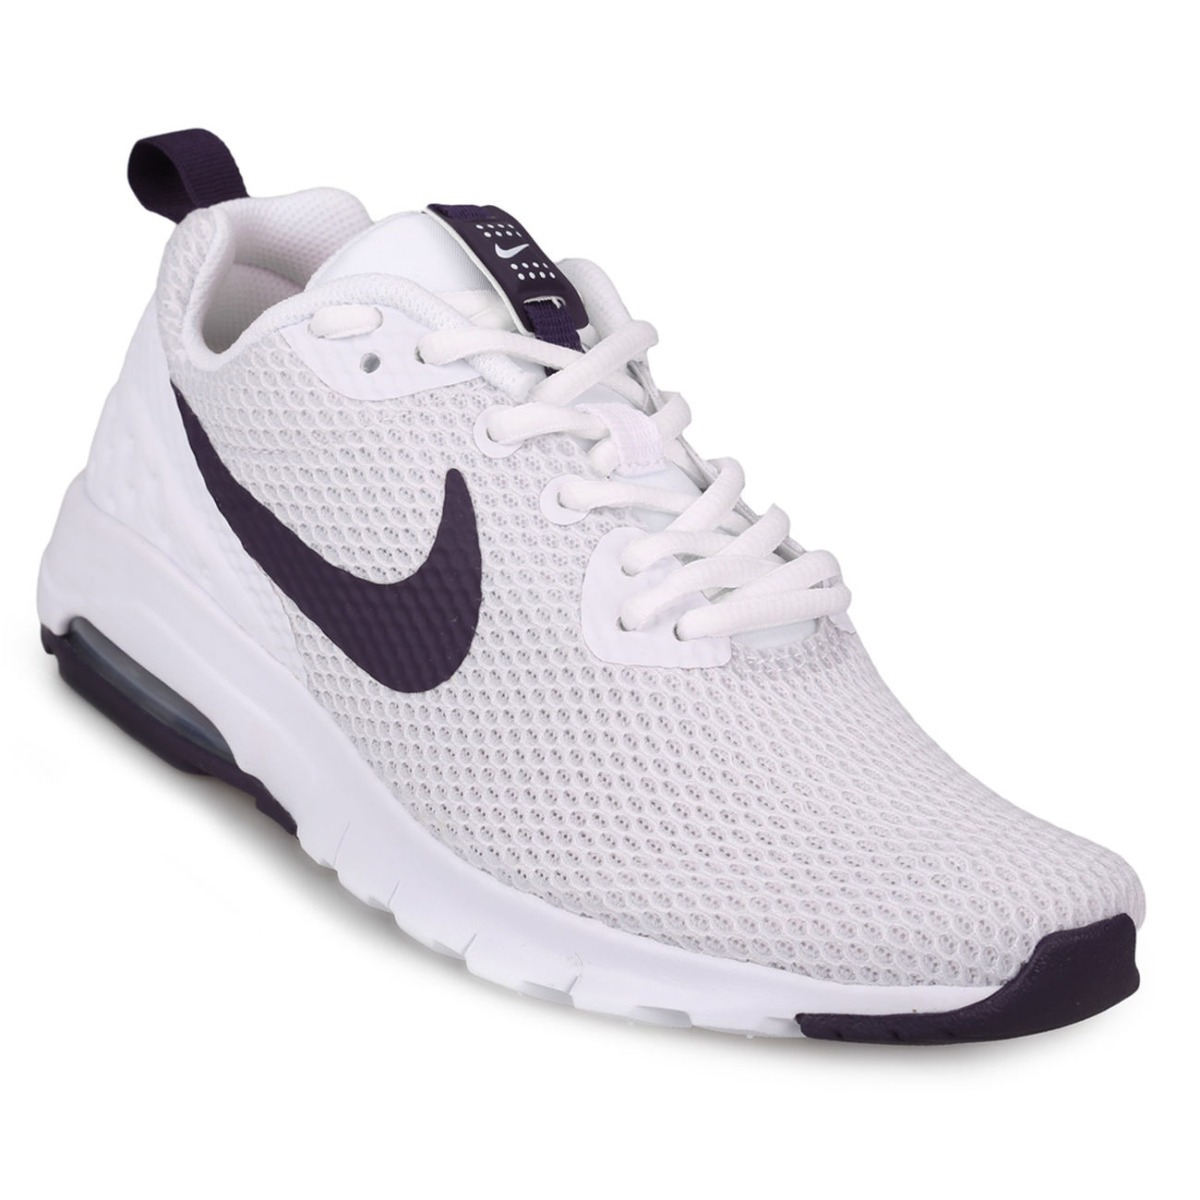 finest selection 1f1d7 fcc1c Zapatillas Nike Air Max Motion Lw Se - Blanco - Mujer - $ 5.444,43 ...